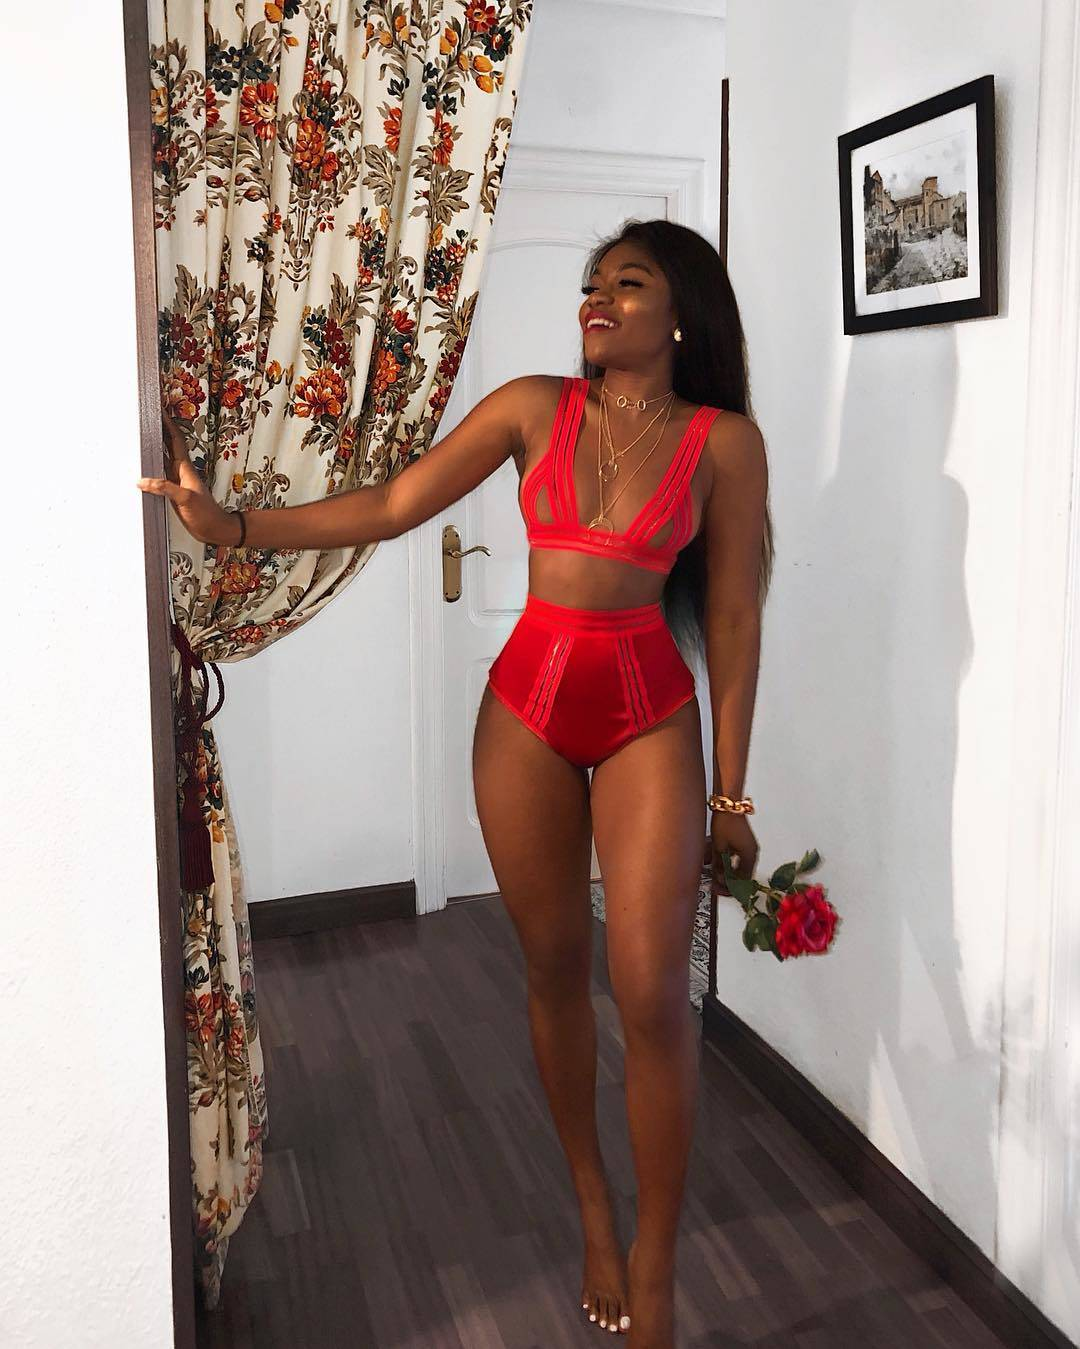 Red sexy lingerie swimsuit